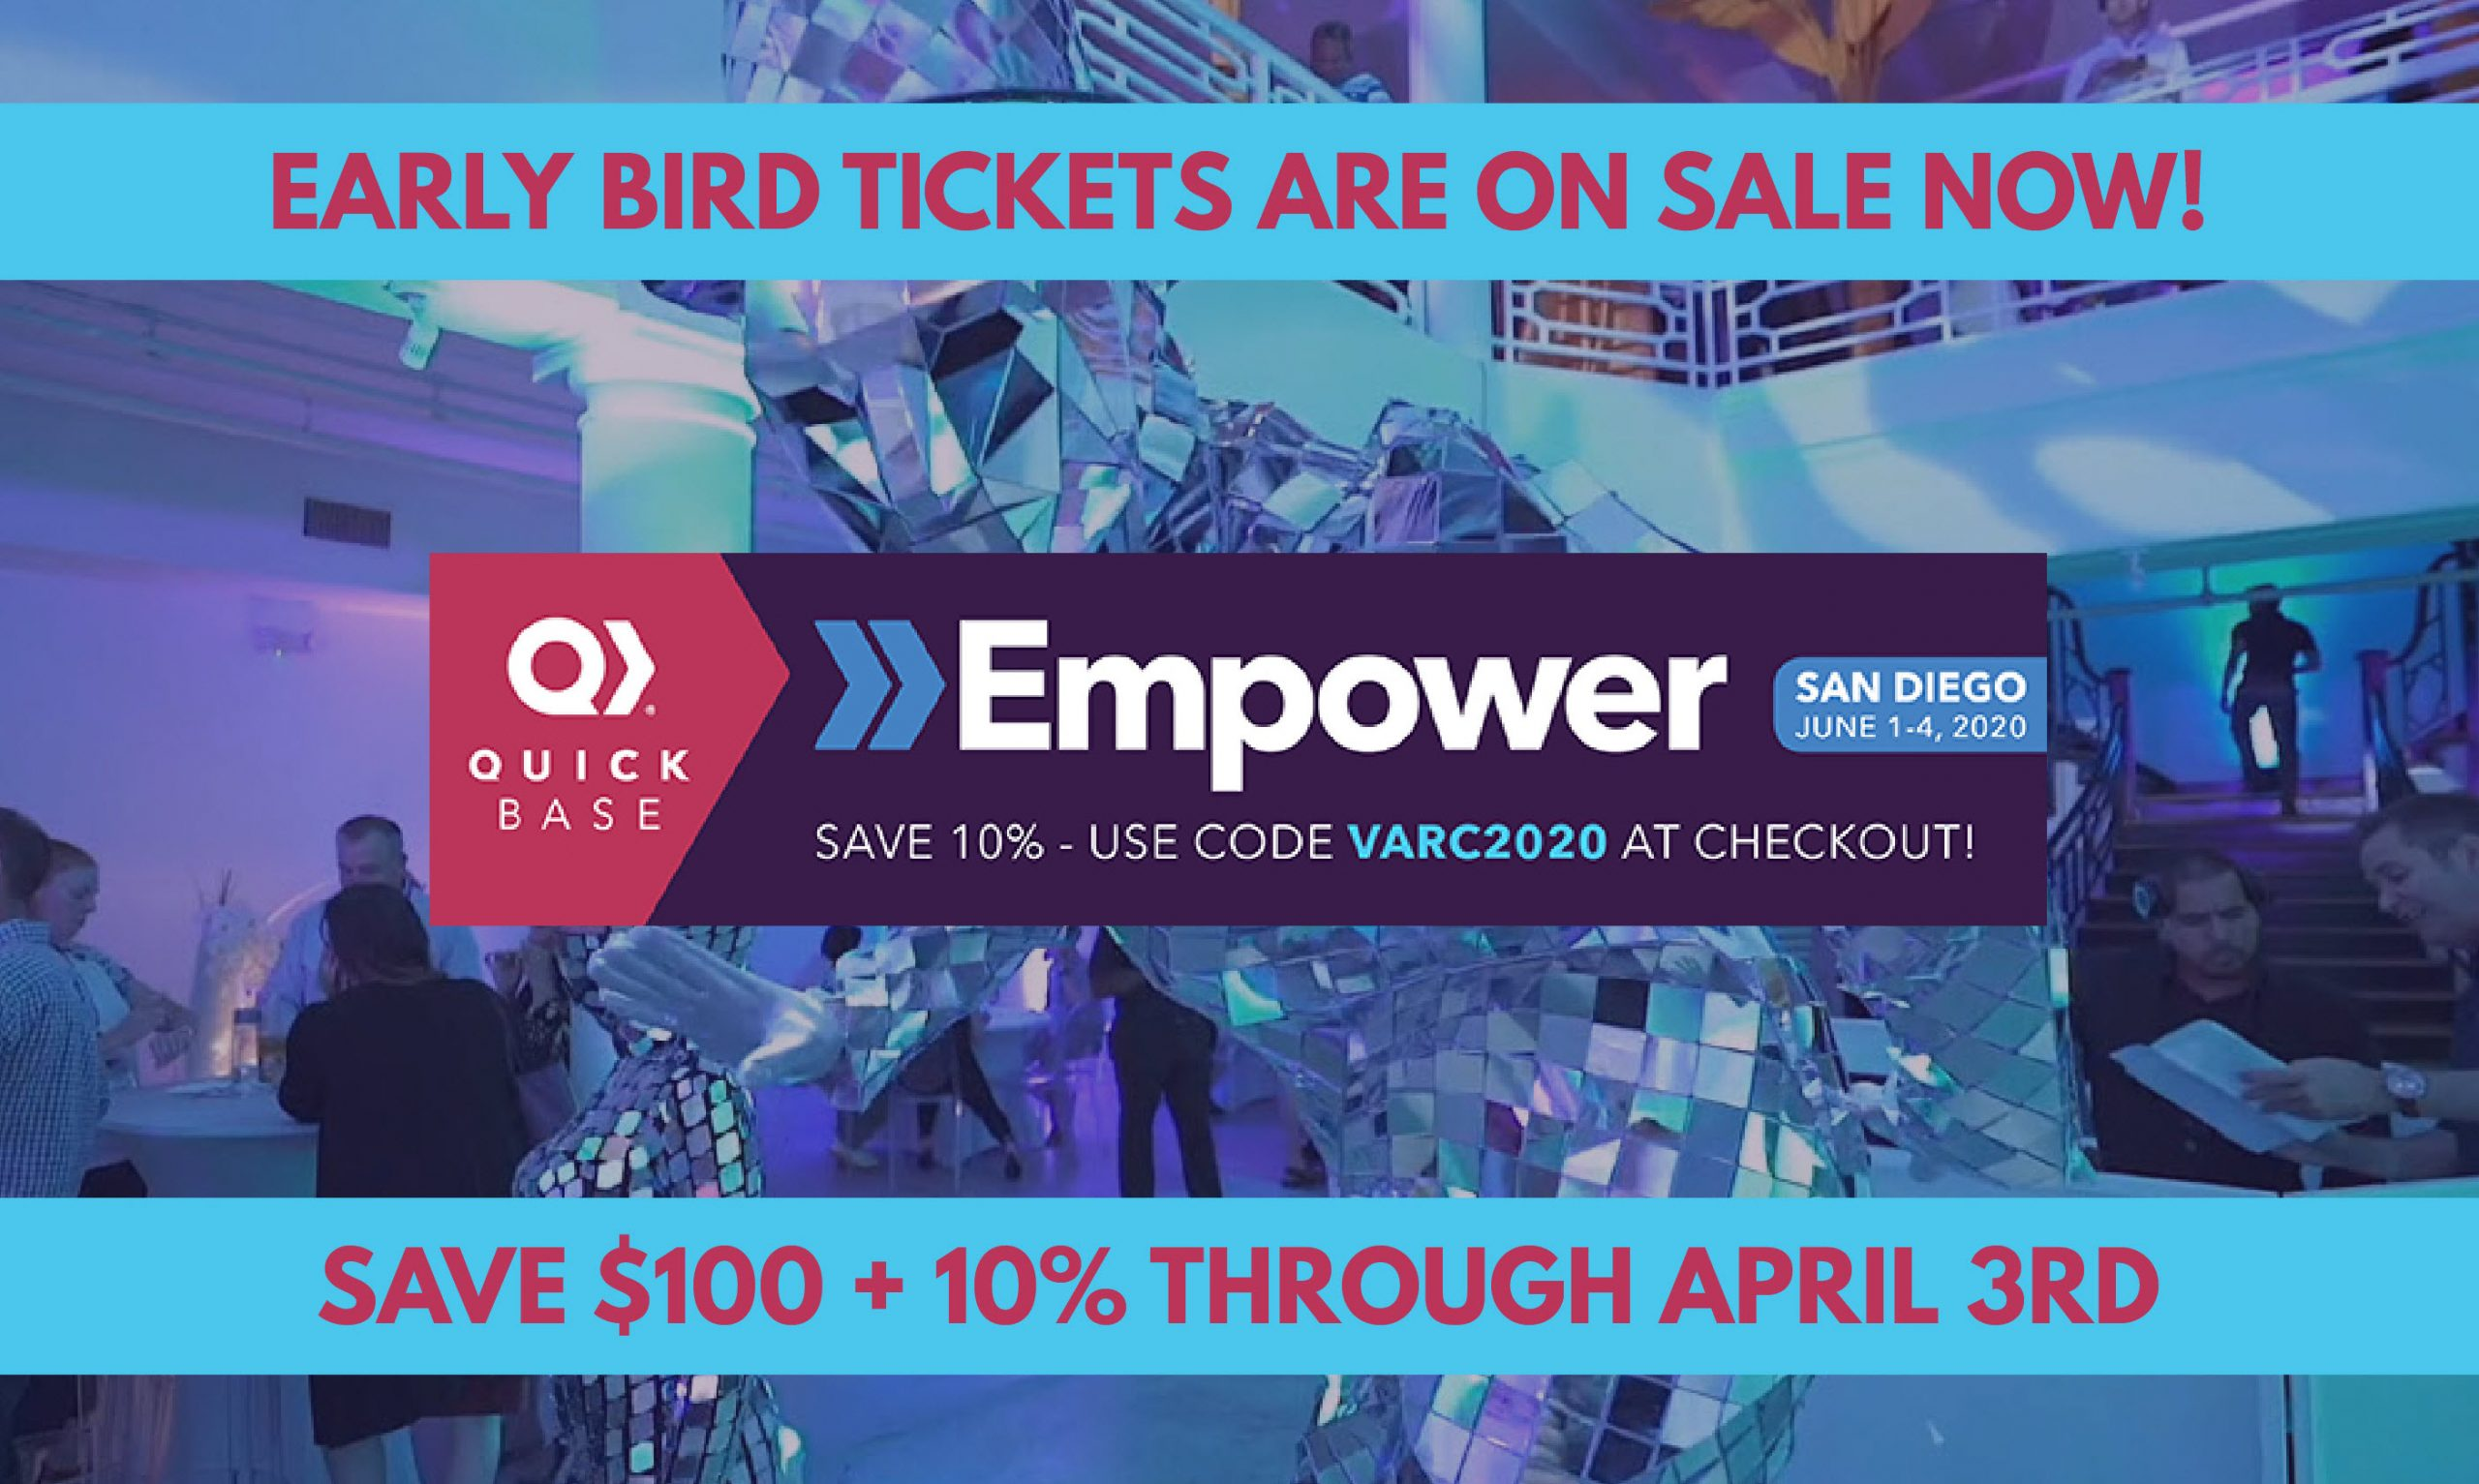 Quick Base Empower 2020 Early Bird Tickets Sale!